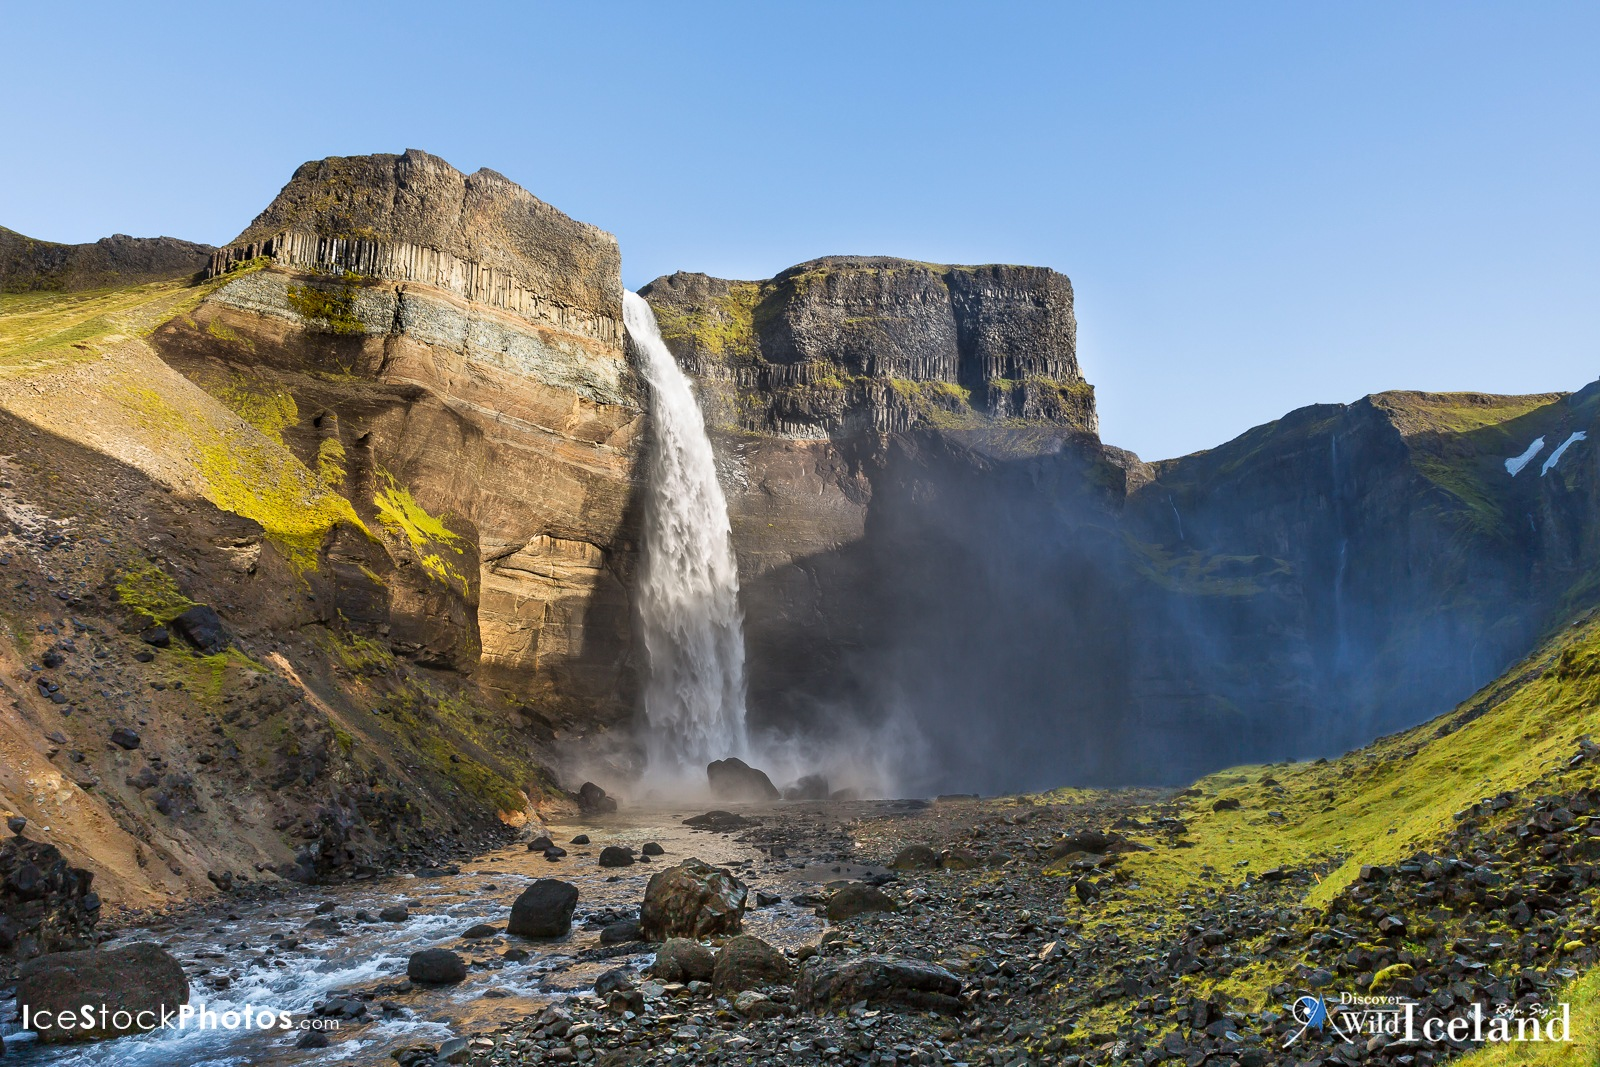 One from the Icelandic Stock Photo web: - Different angel of Háifoss Waterfall by Rafn Sig,-  @ Discover Wild Iceland.com